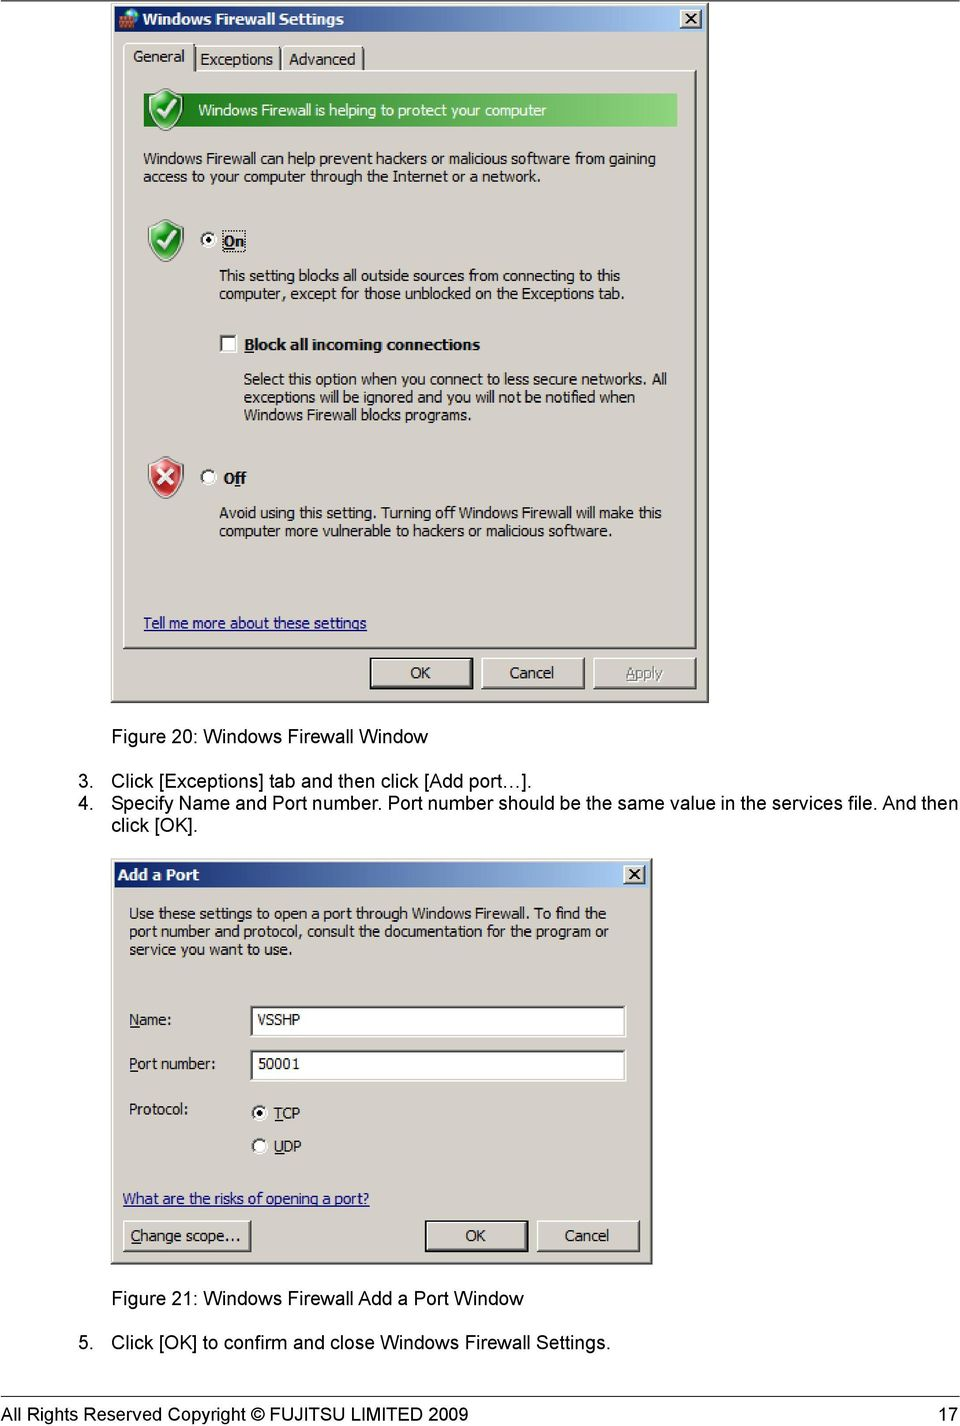 And then click [OK]. Figure 21: Windows Firewall Add a Port Window 5.